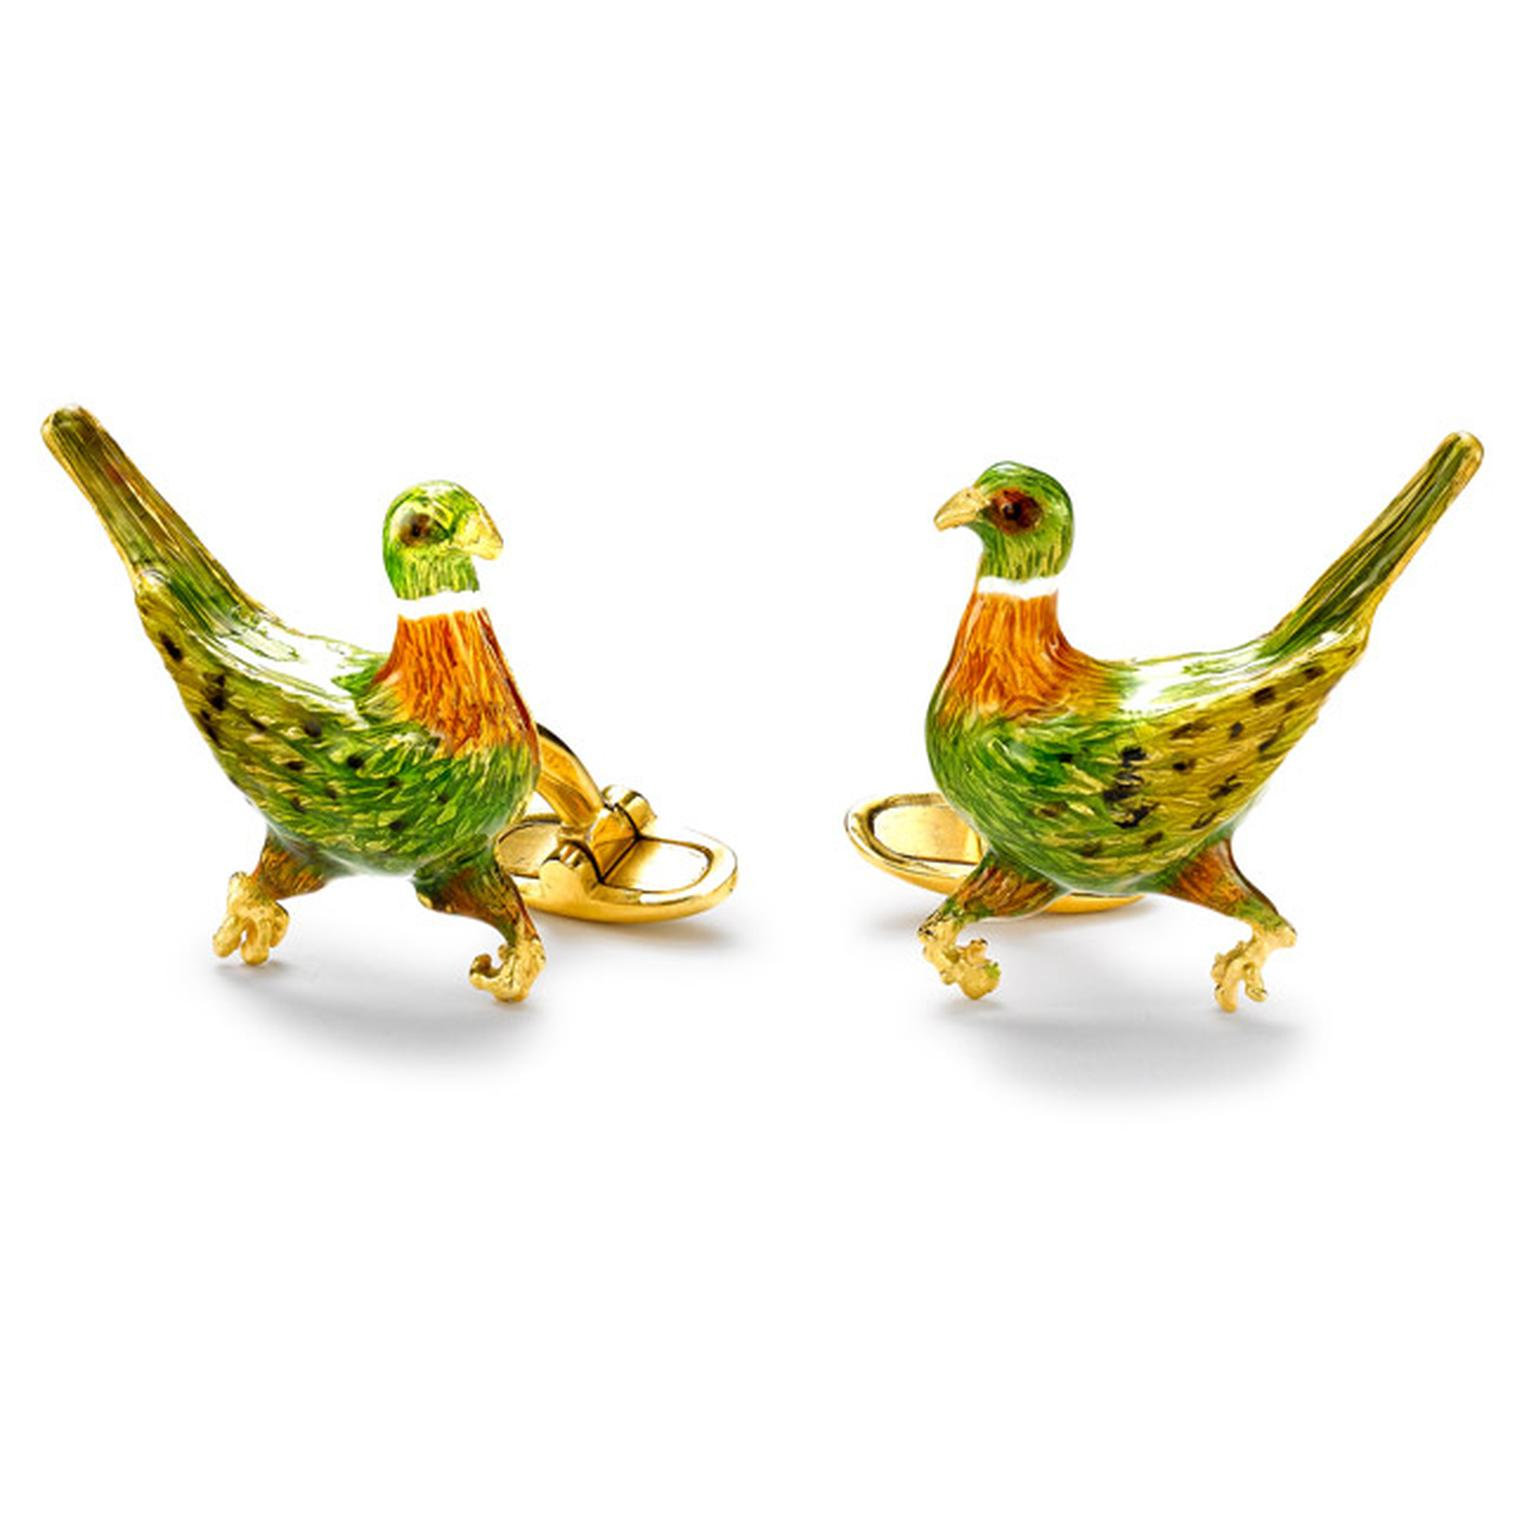 Kiki-Mc-Grouse-Cufflinks-Main